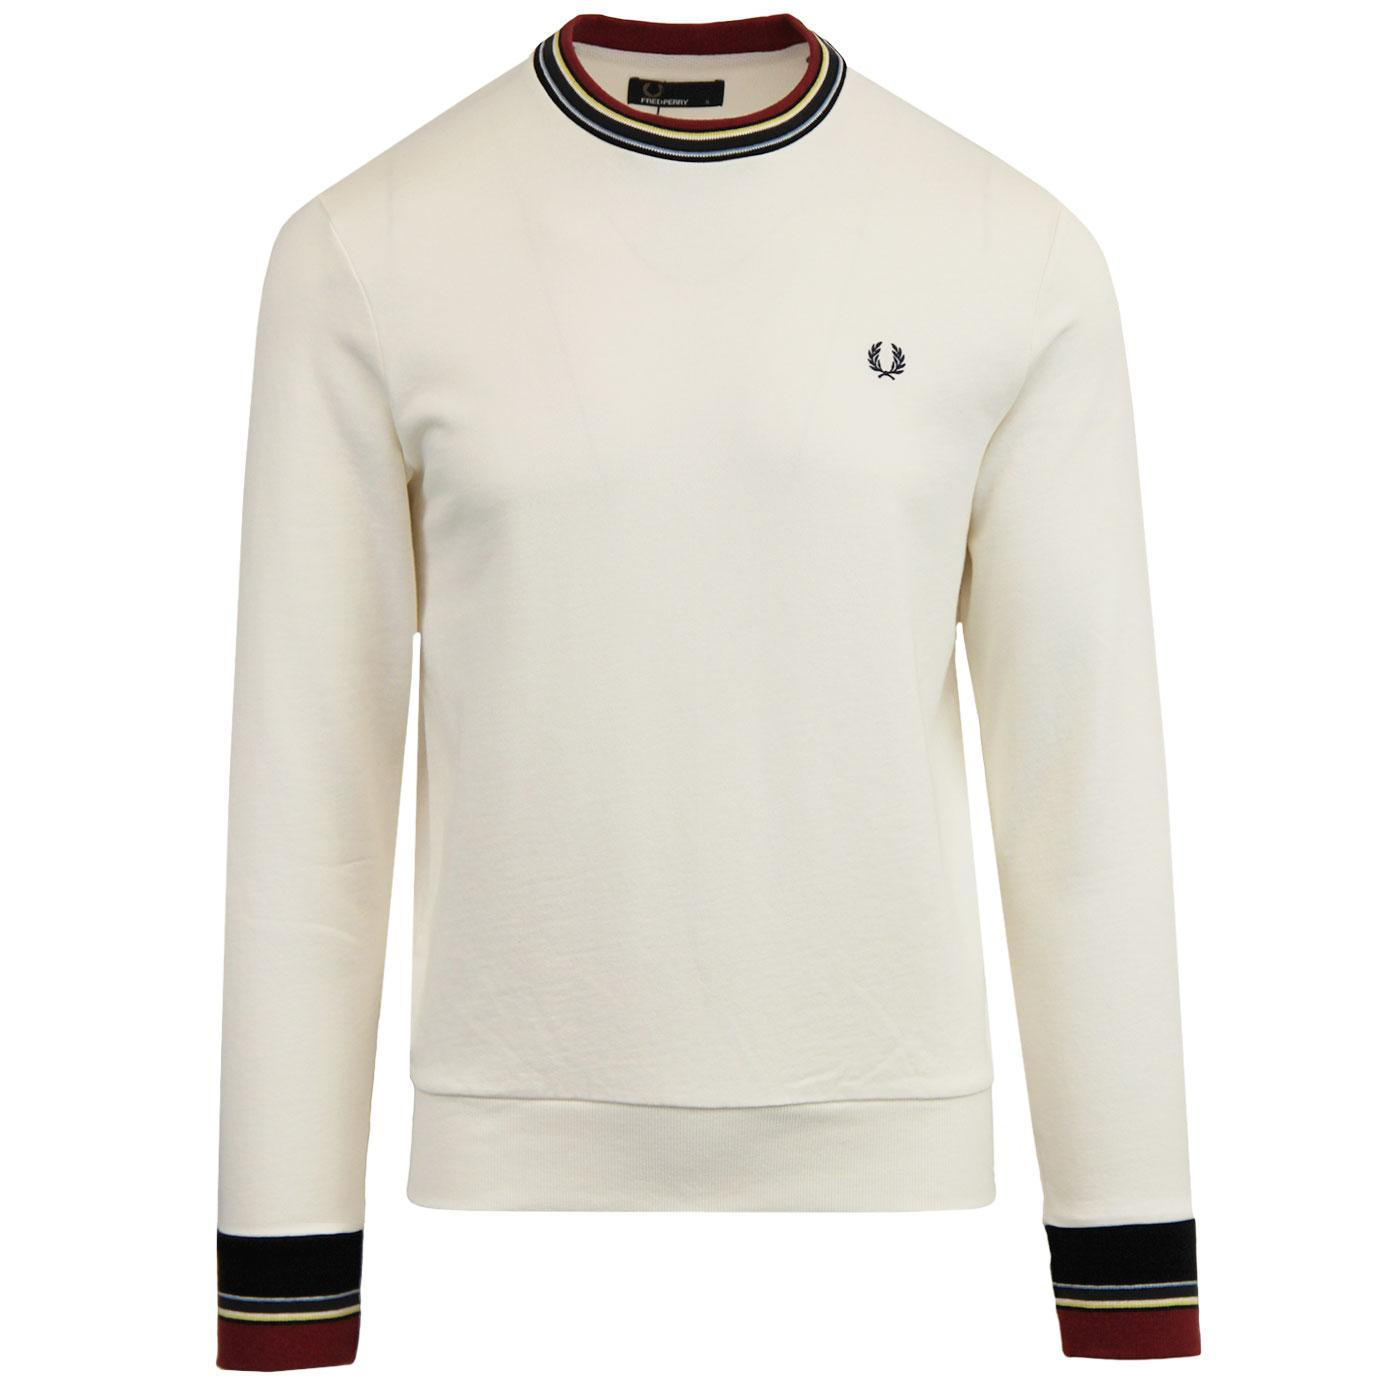 FRED PERRY Retro Mod Bold Tipped Crew Sweater SW